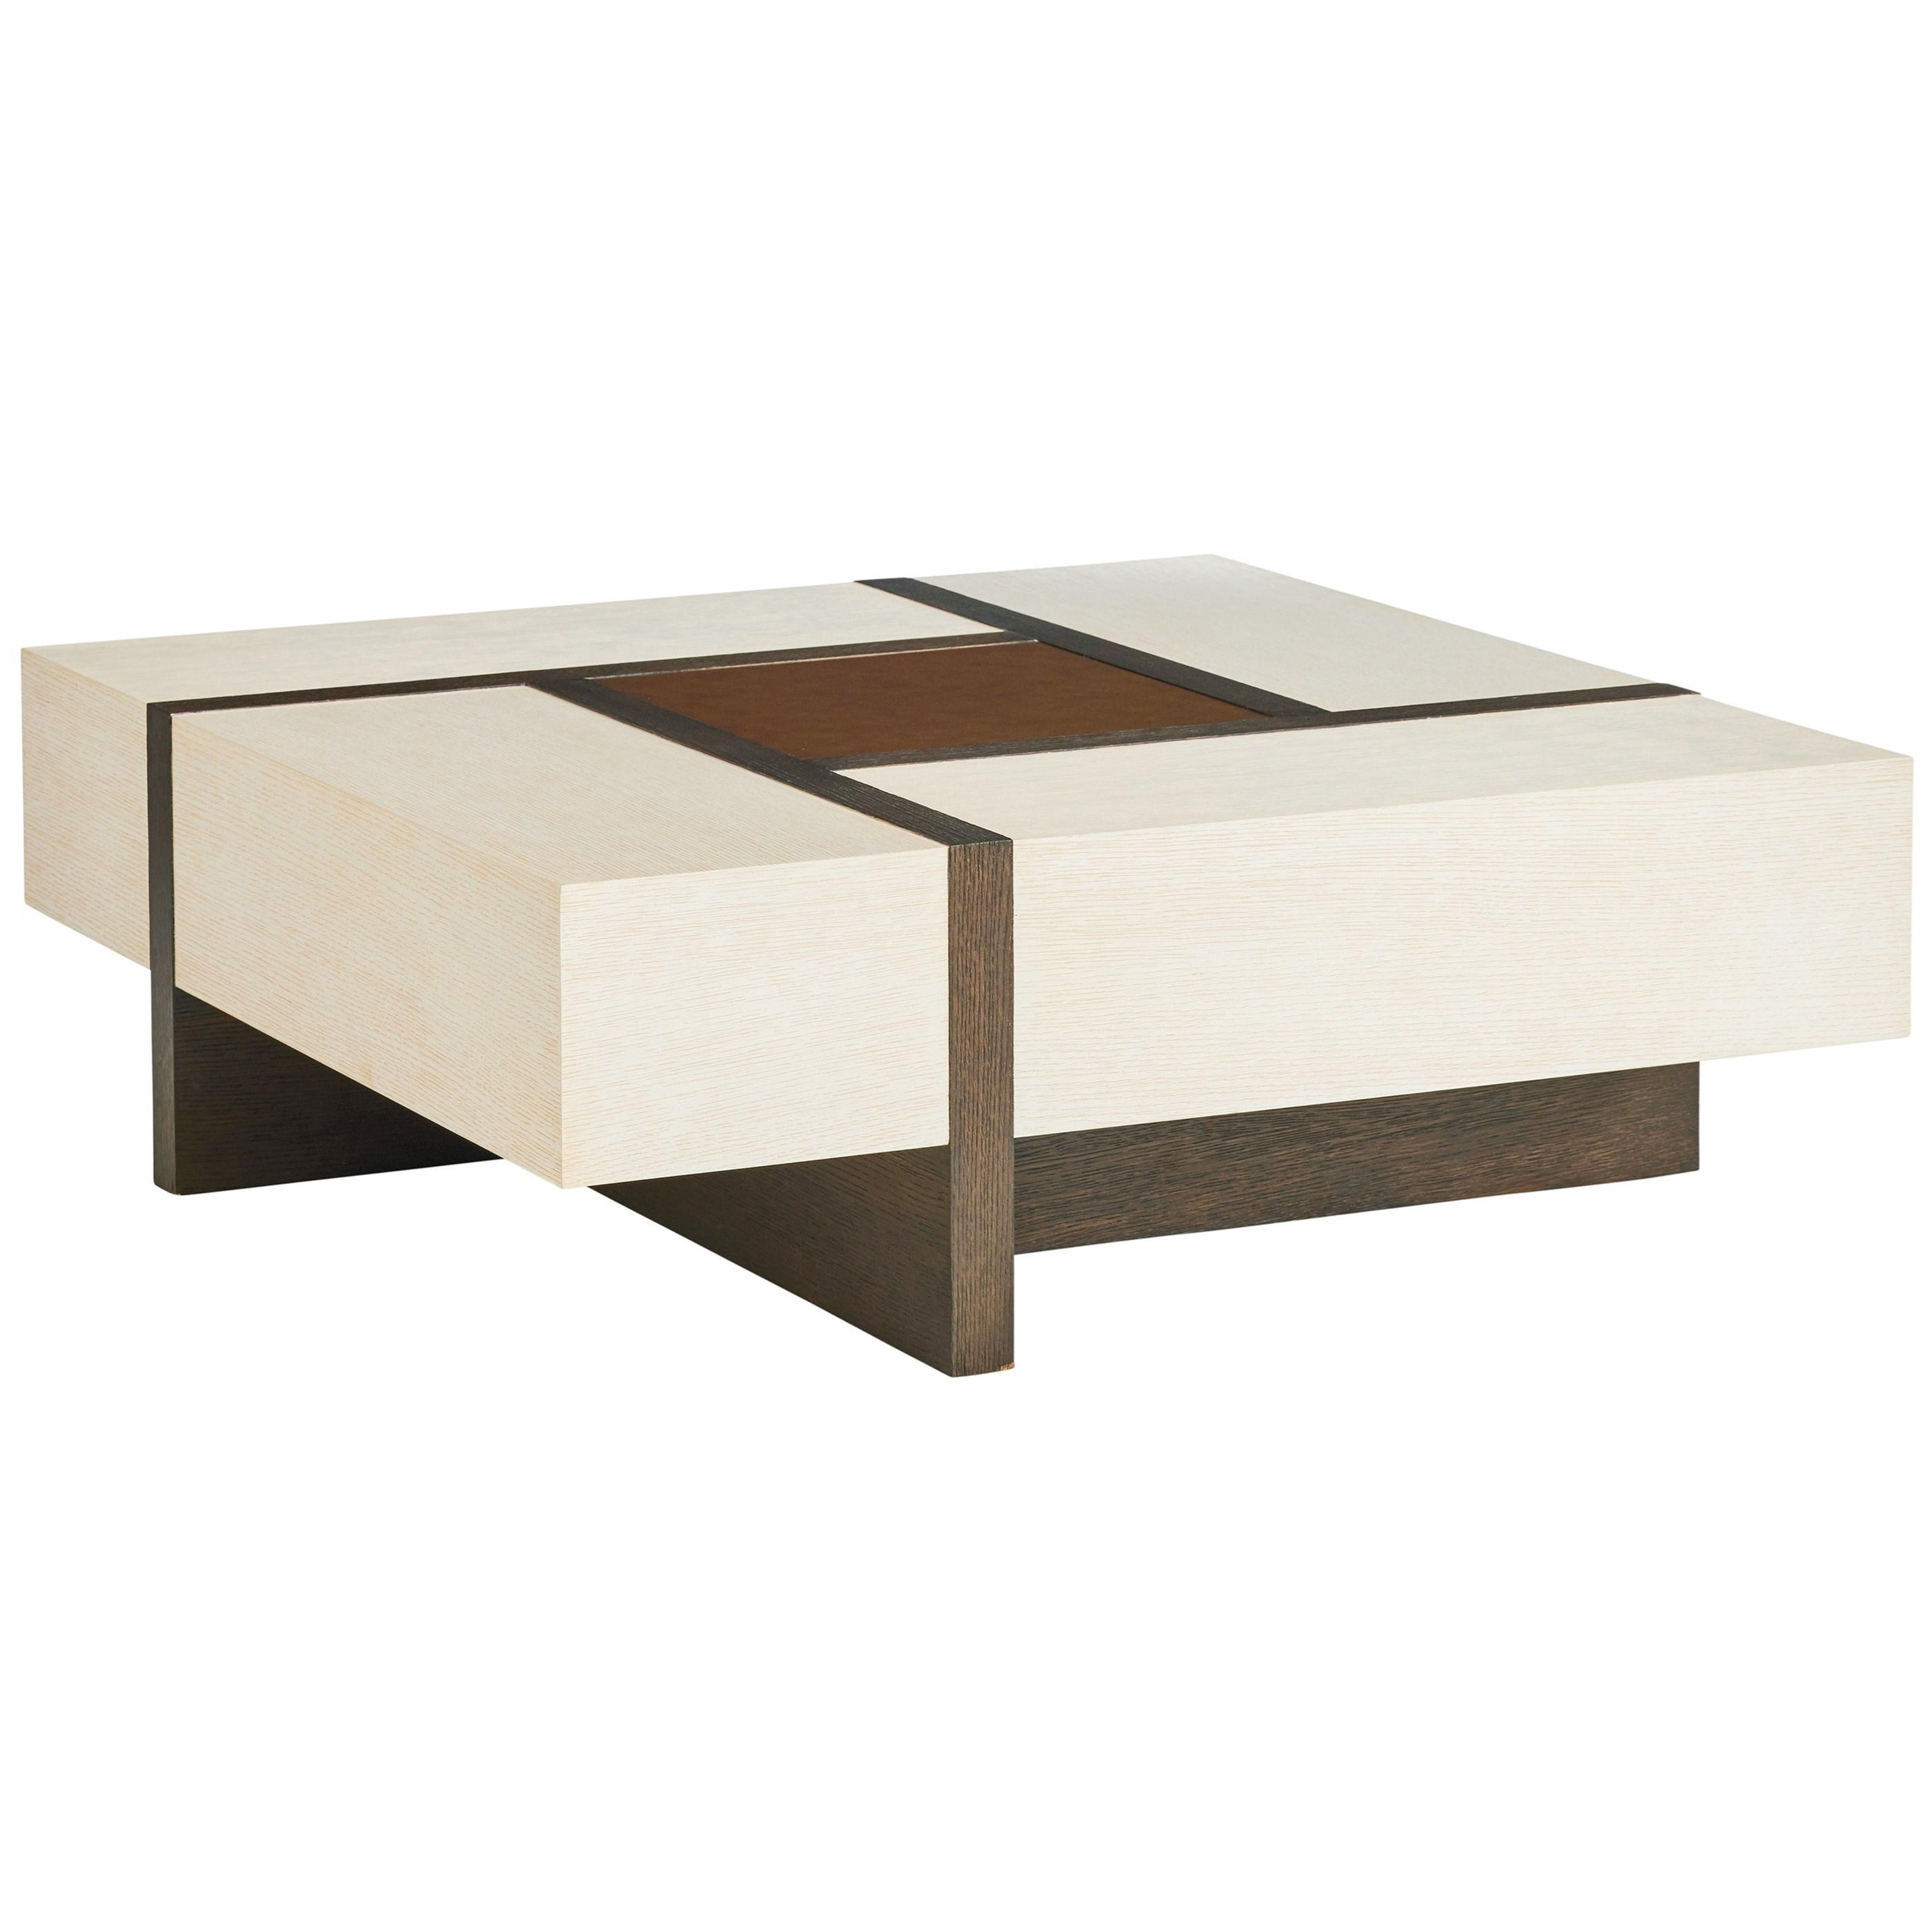 Carmel Links Square Cocktail Table by Barclay Butera at Baer's Furniture